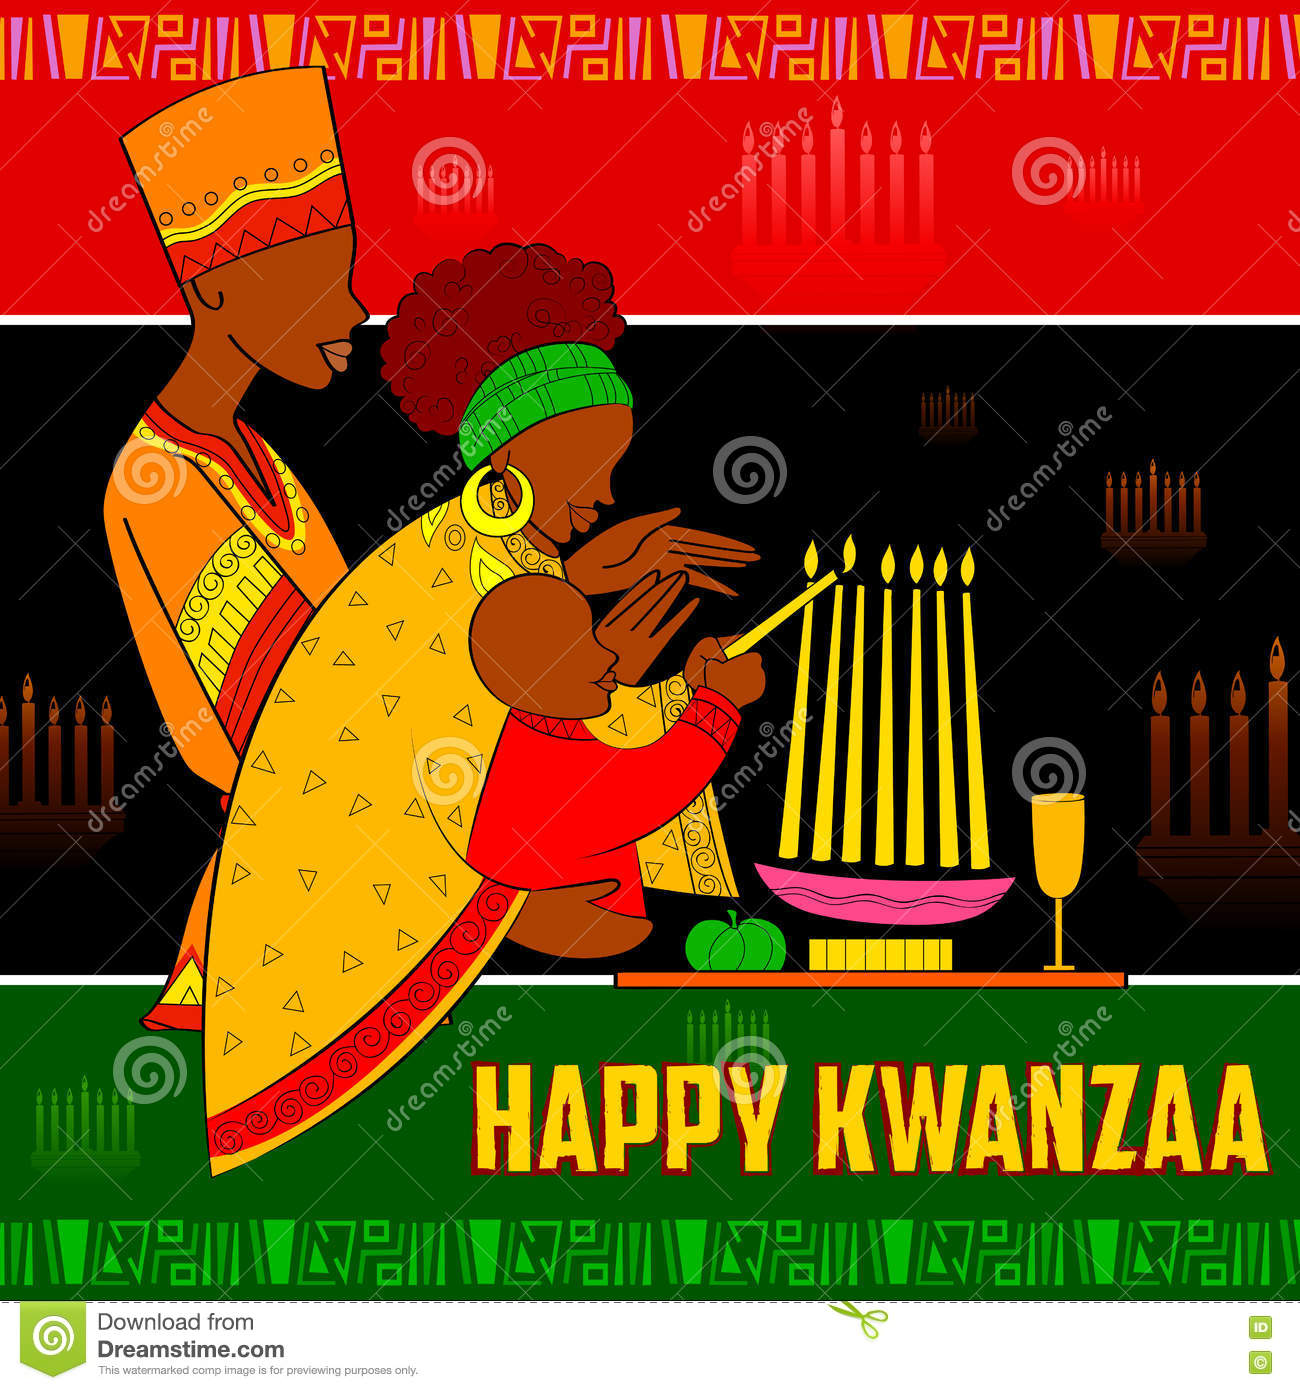 Happy kwanzaa greetings for celebration of african american holiday download happy kwanzaa greetings for celebration of african american holiday festival harvest stock vector illustration m4hsunfo